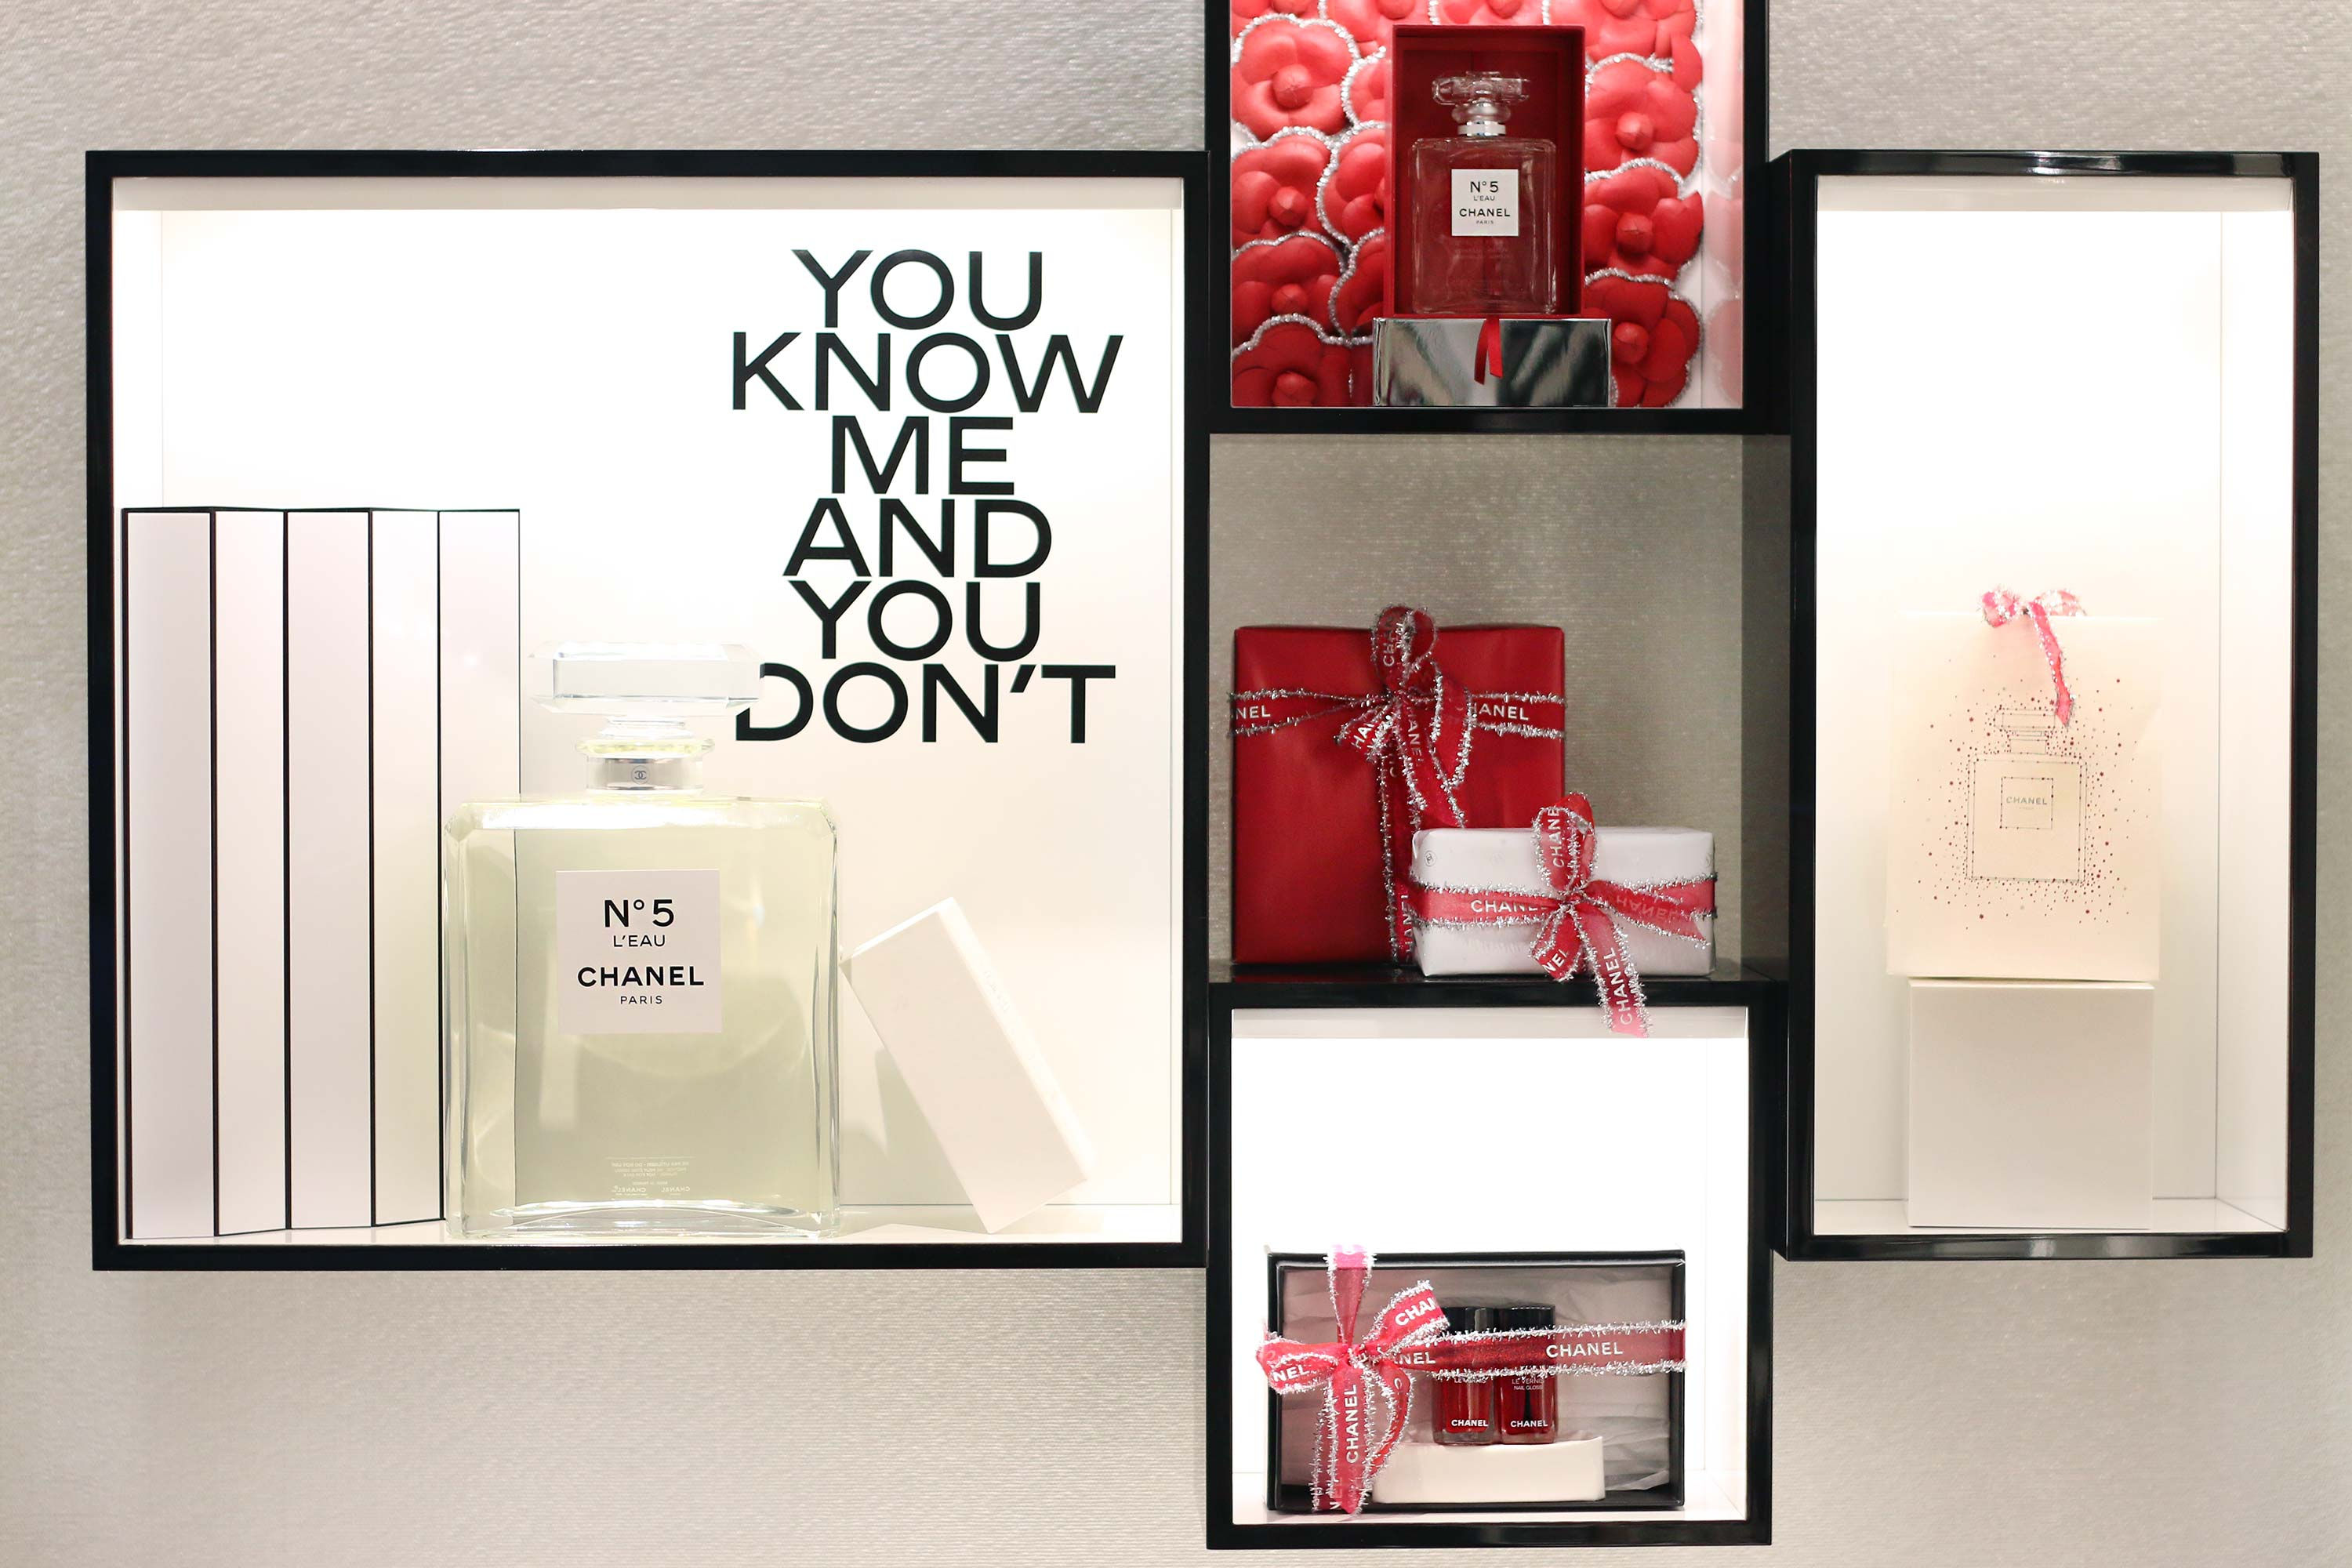 chanel-beauty-boutique-hamburg